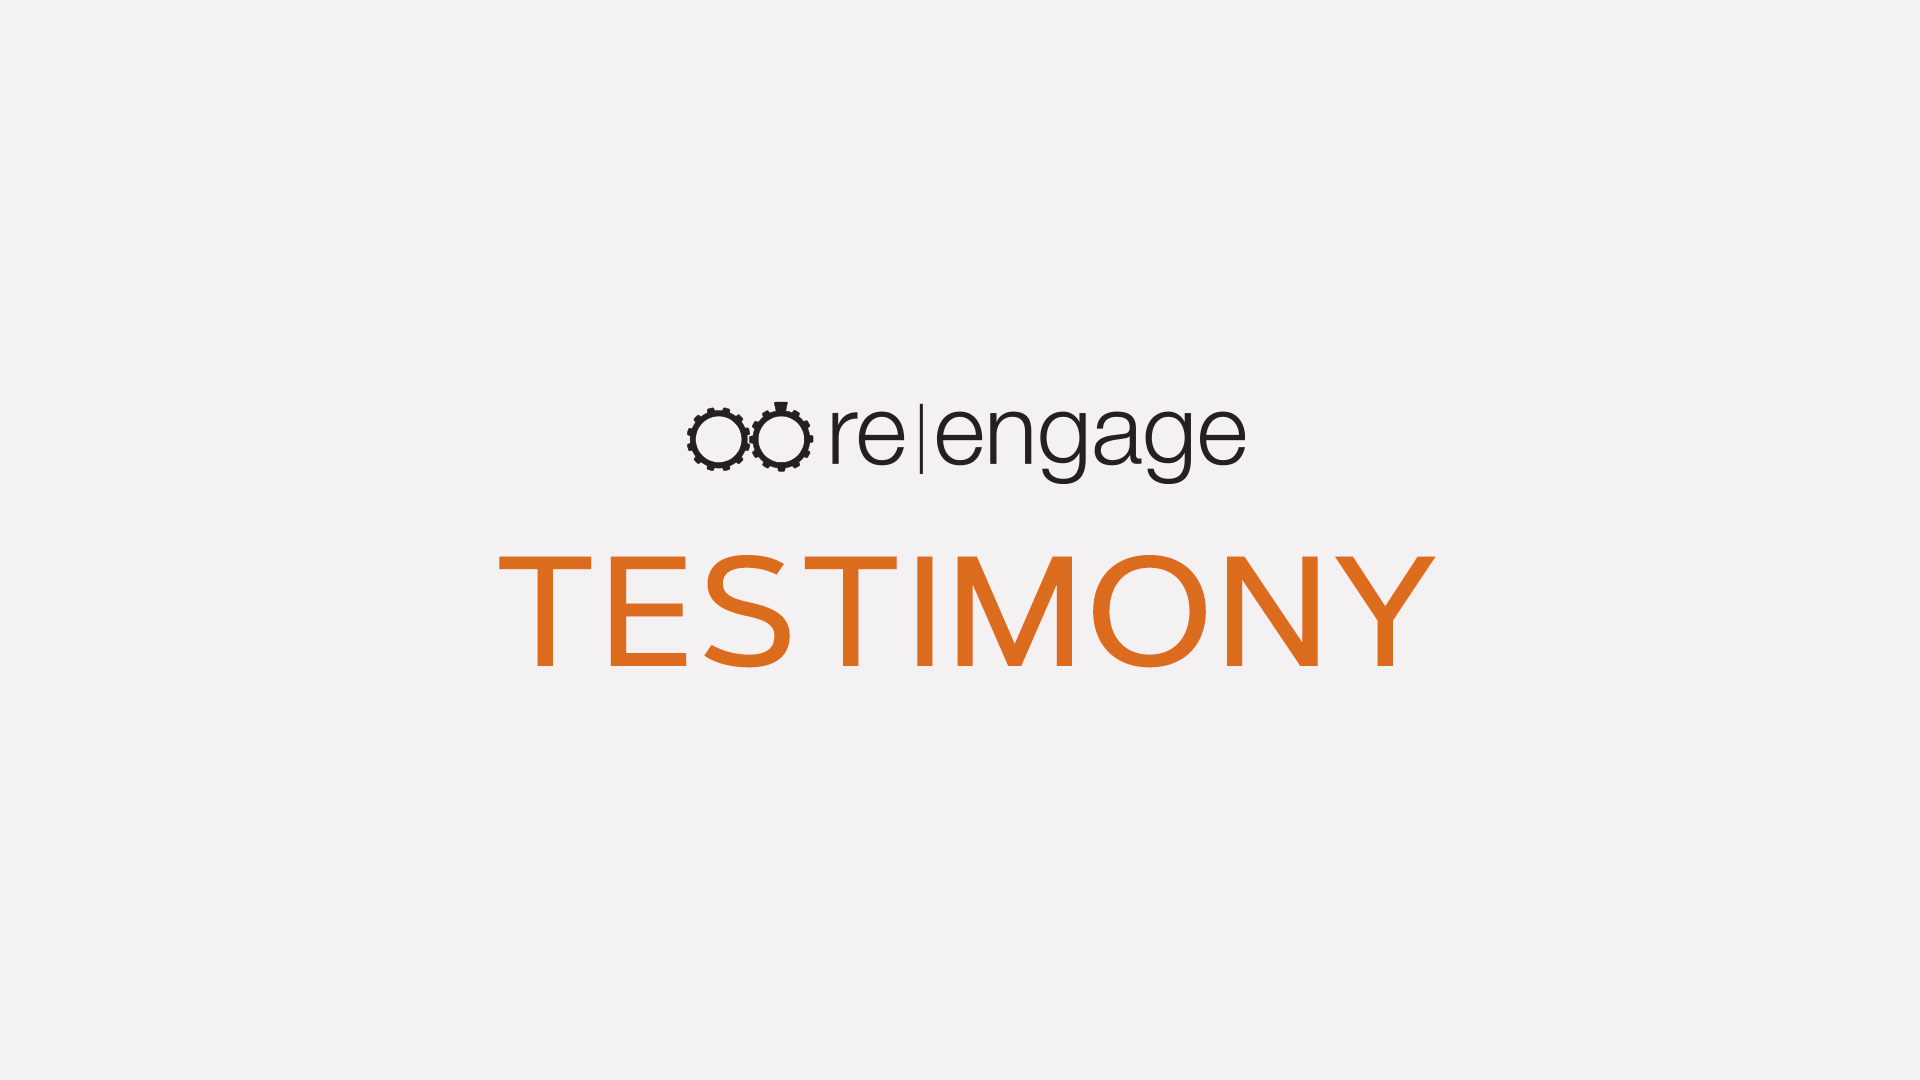 Everett and Emily Alexander - re|engage Testimony